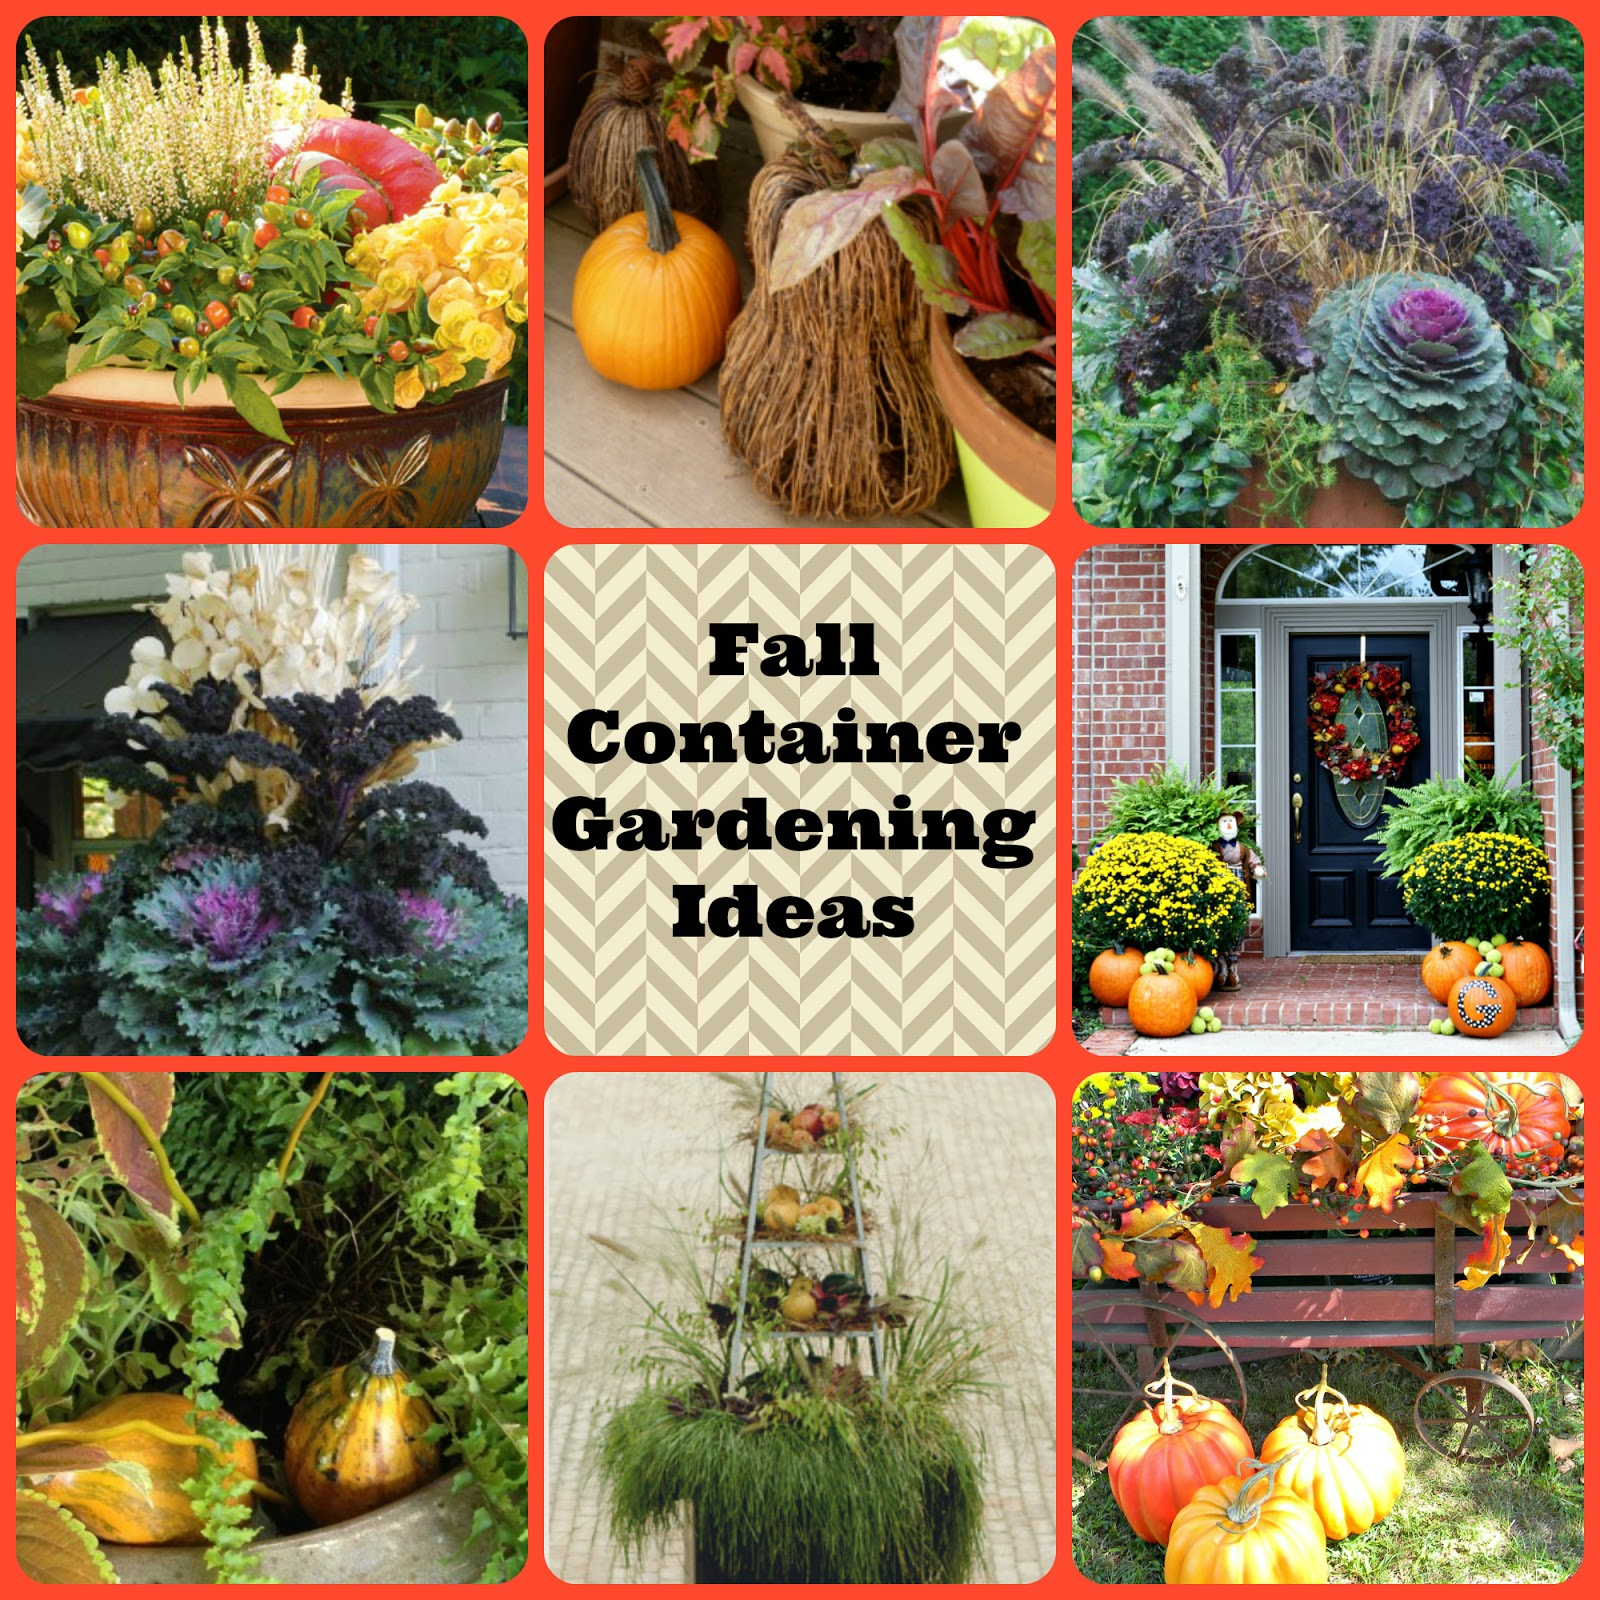 Dorothy Sue And Millie B's Too: Fall Container Gardening